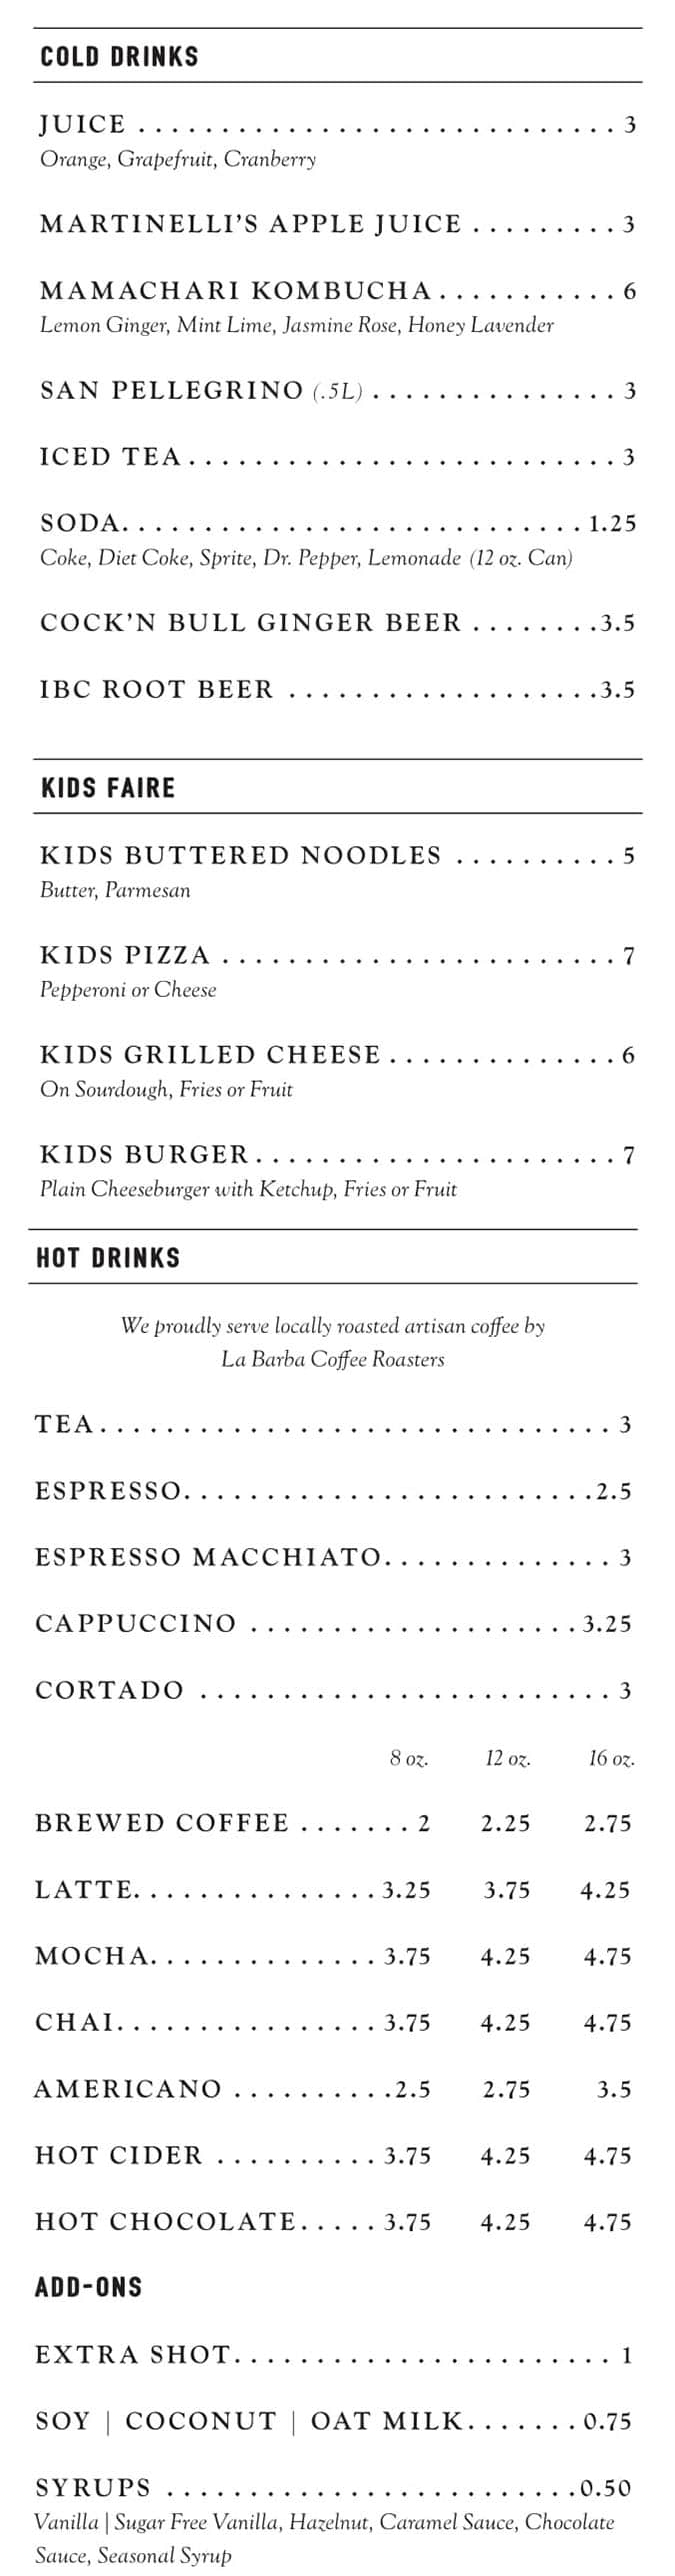 Straford Proper dinner menu - cold drinks, hot drinks, kids